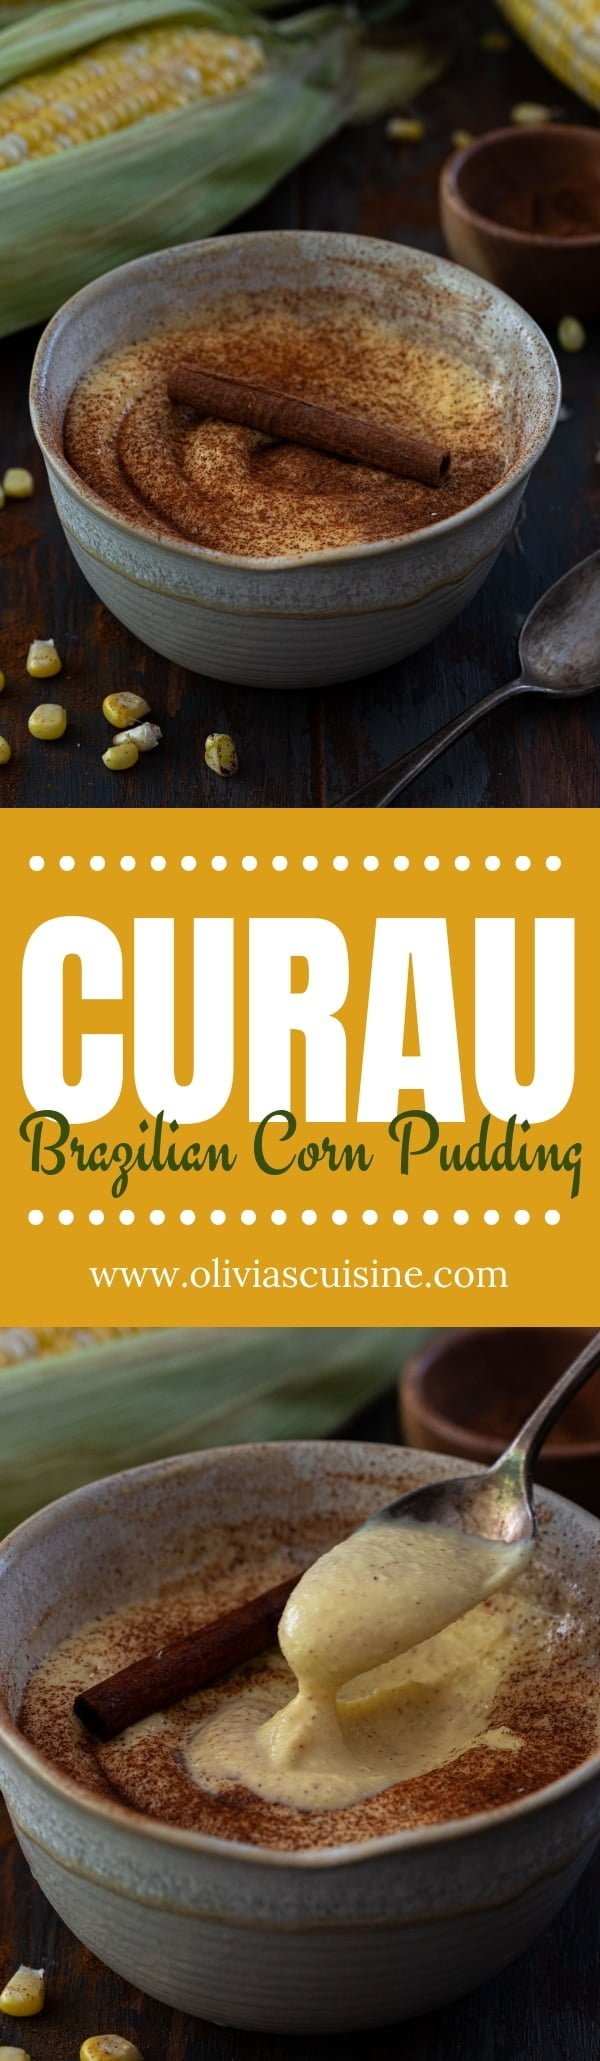 Curau de Milho (Brazilian Corn Pudding) | www.oliviascuisine.com | A traditional Brazilian dessert, Curau de Milho takes full advantage of fresh summer corn! Sweet and creamy, it can be enjoyed warm or cold. (Recipe and food photography by @oliviascuisine.)